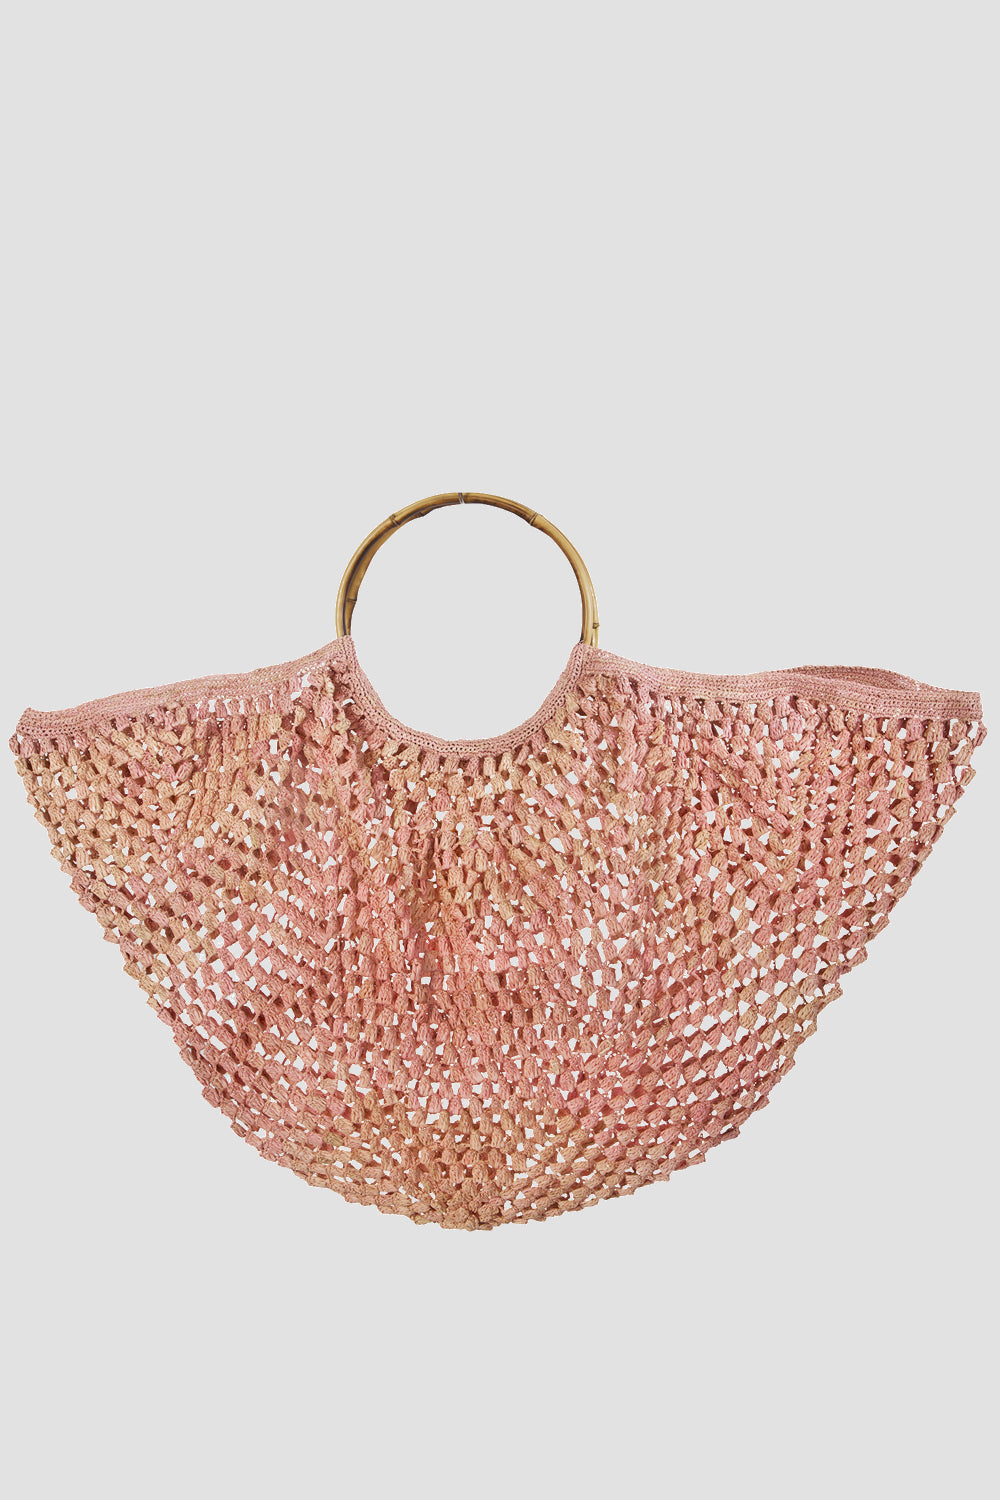 Buy Izia Bag from MADE IN MADA at PAYA boutique